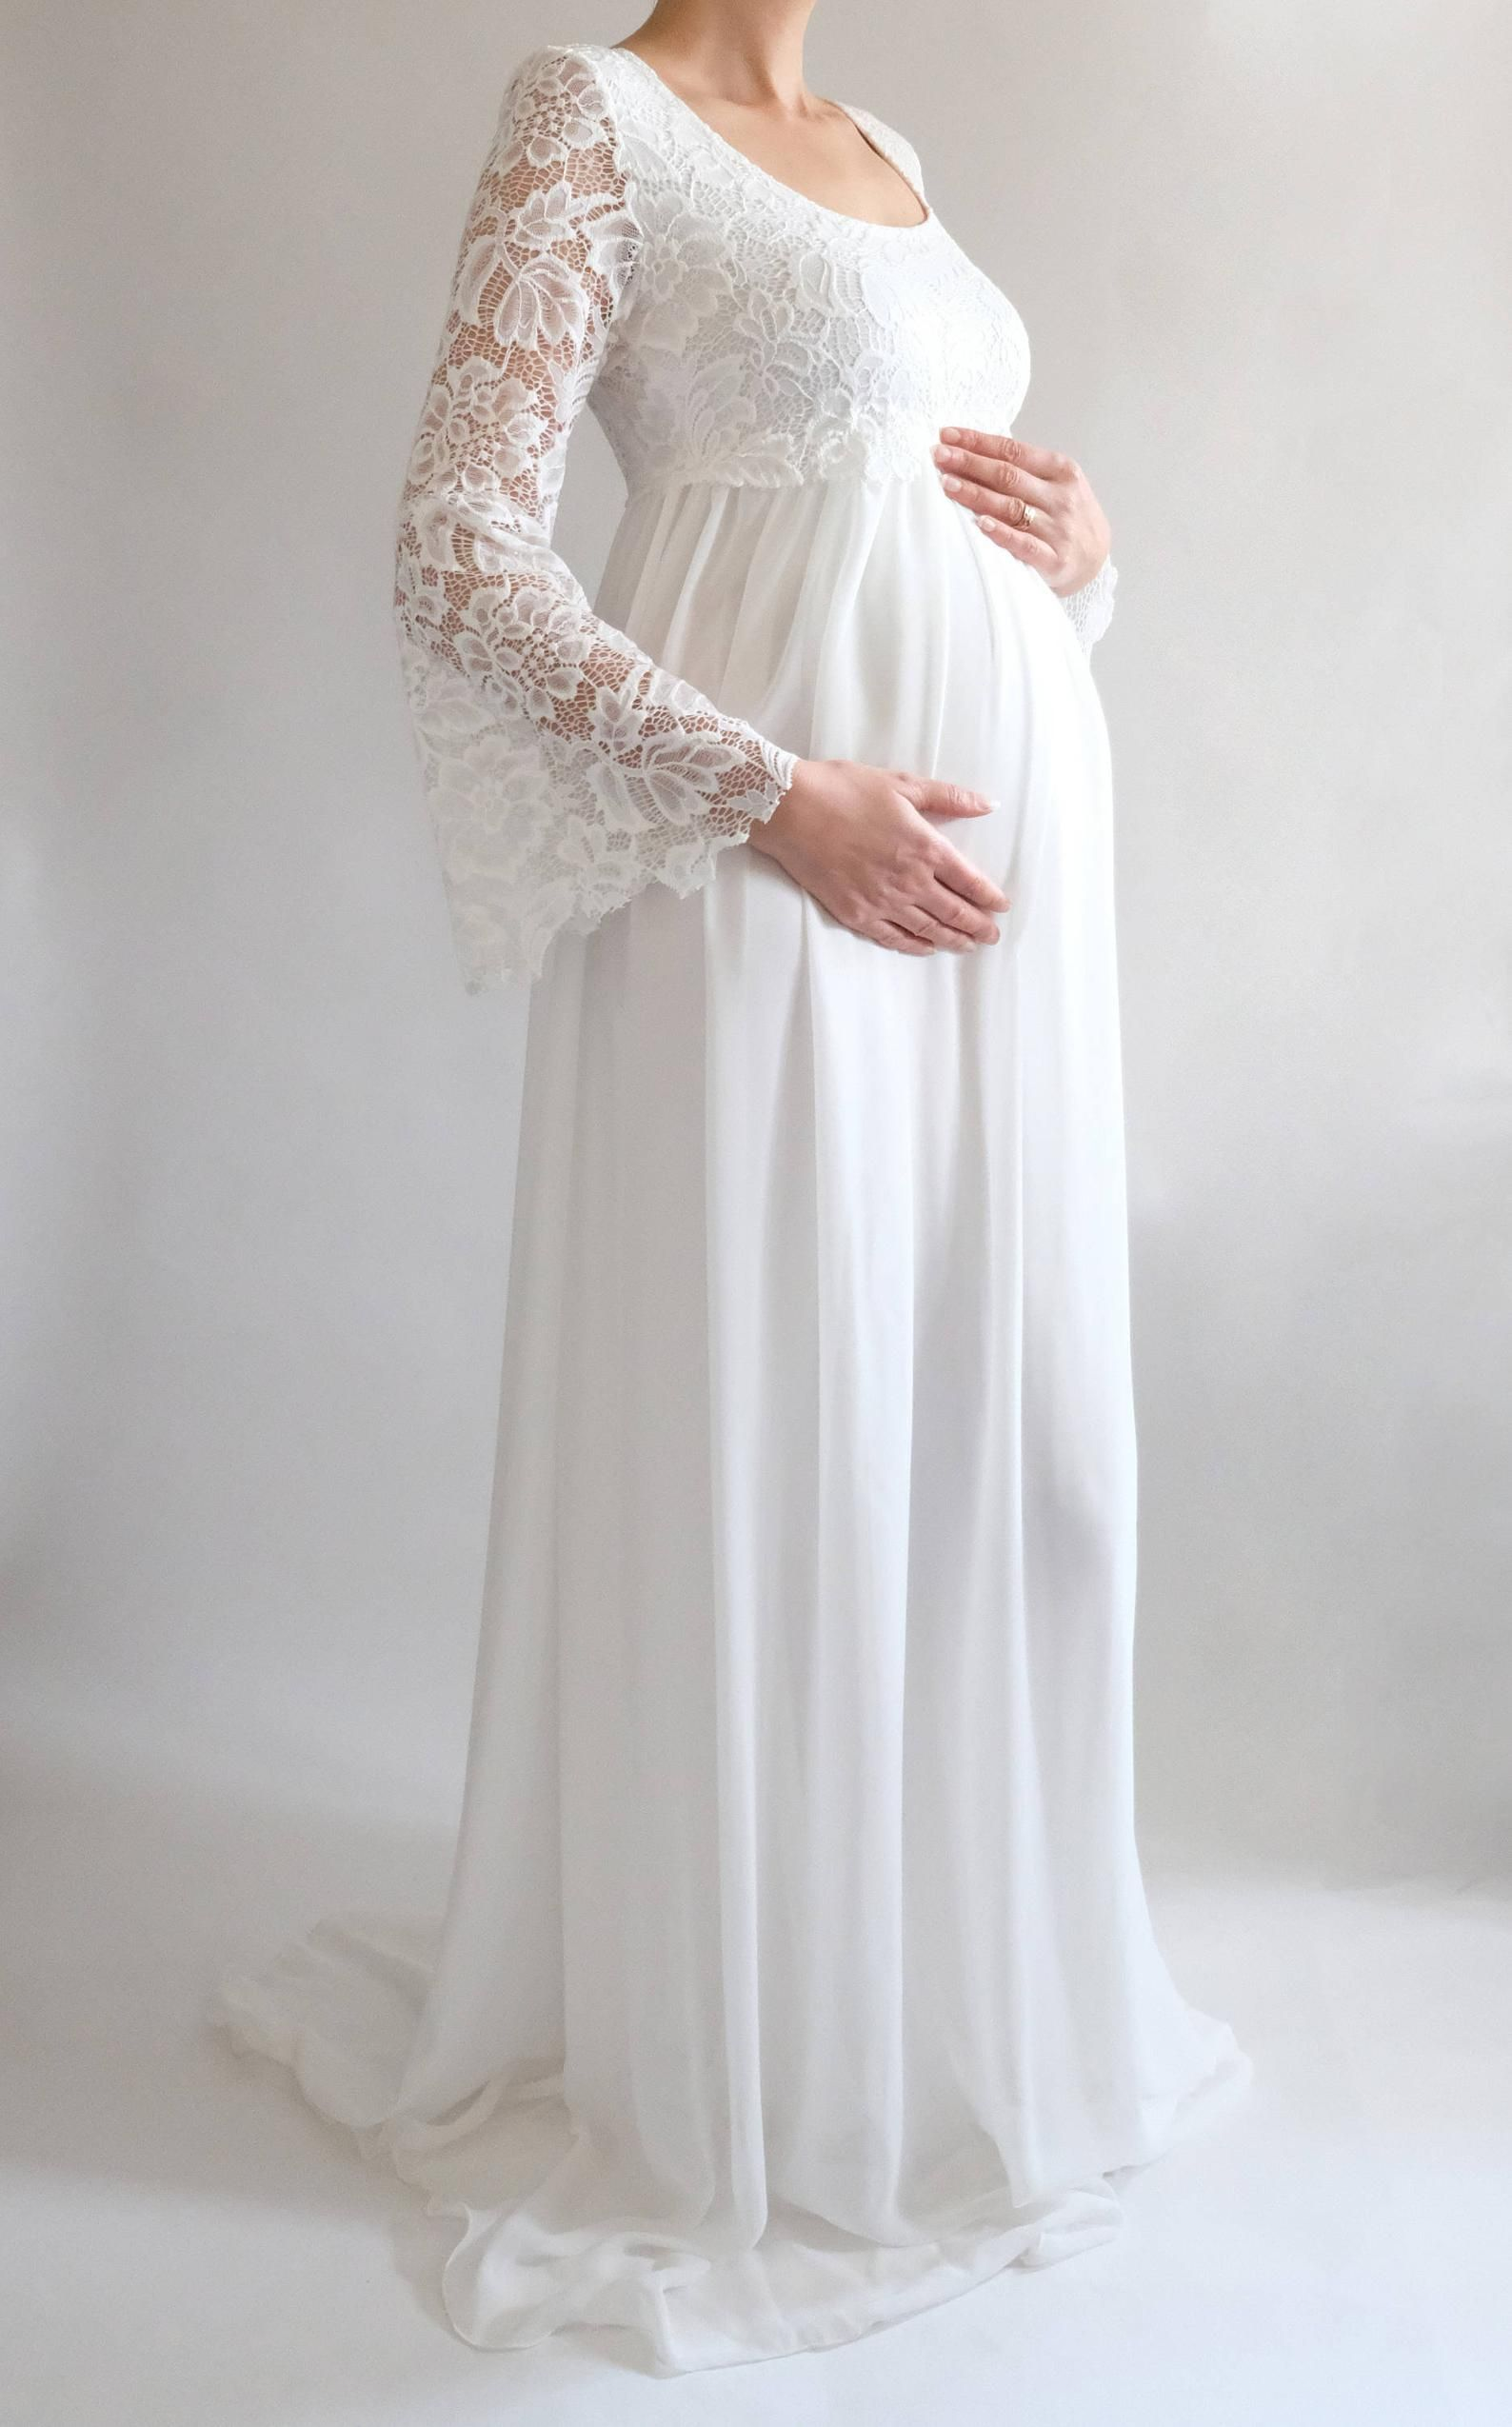 90d595a12c82f MARGARET Lace Maternity Dress for Baby Shower Boho Wedding | This gorgeous  chiffon maternity gown is just perfect for your baby shower, maternity  bridesmaid ...